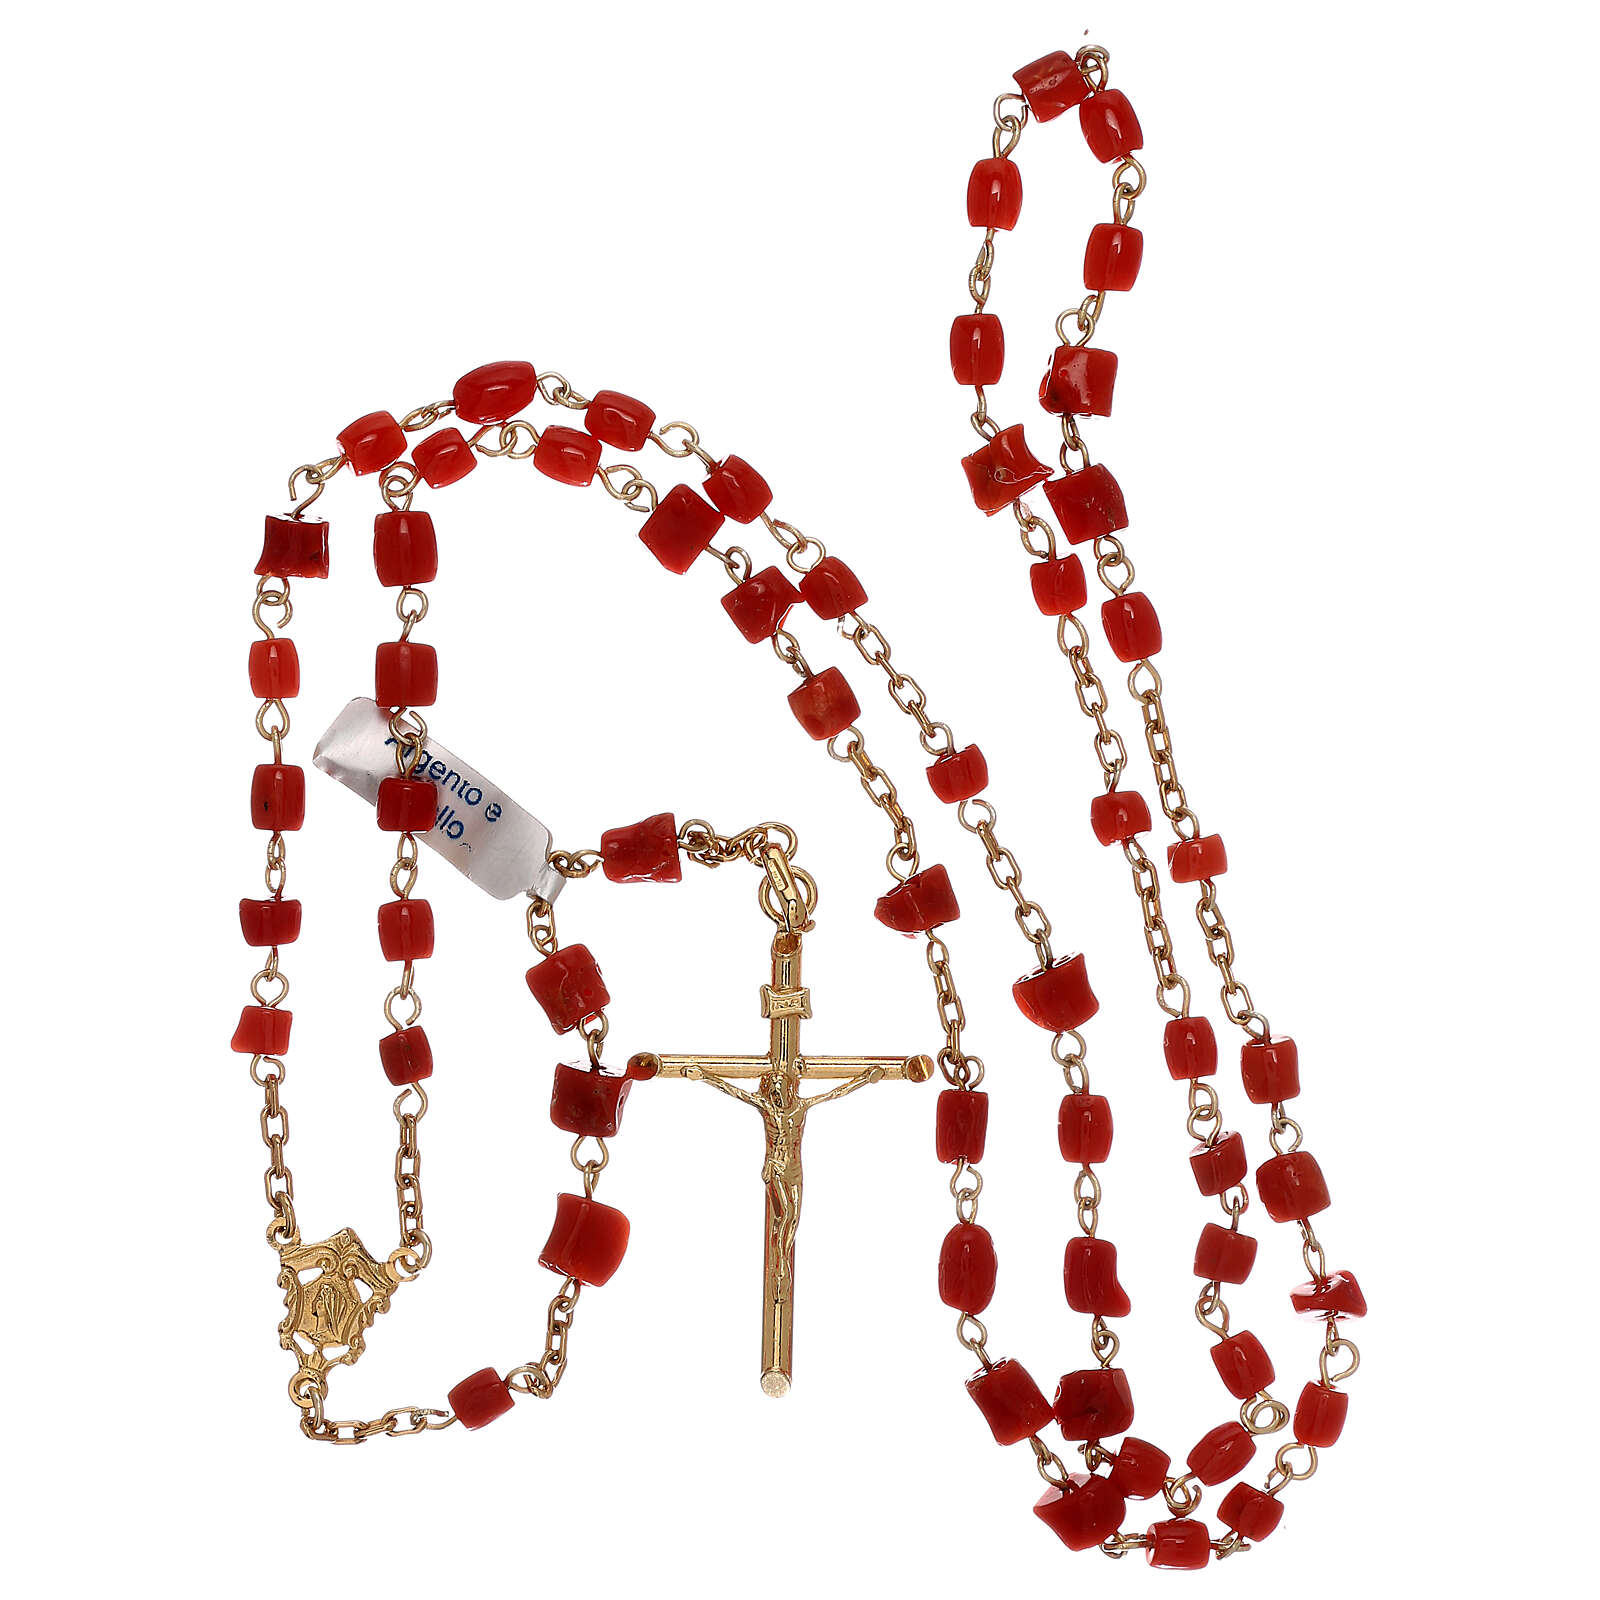 Rosary of gold-plated silver and coral beads 4